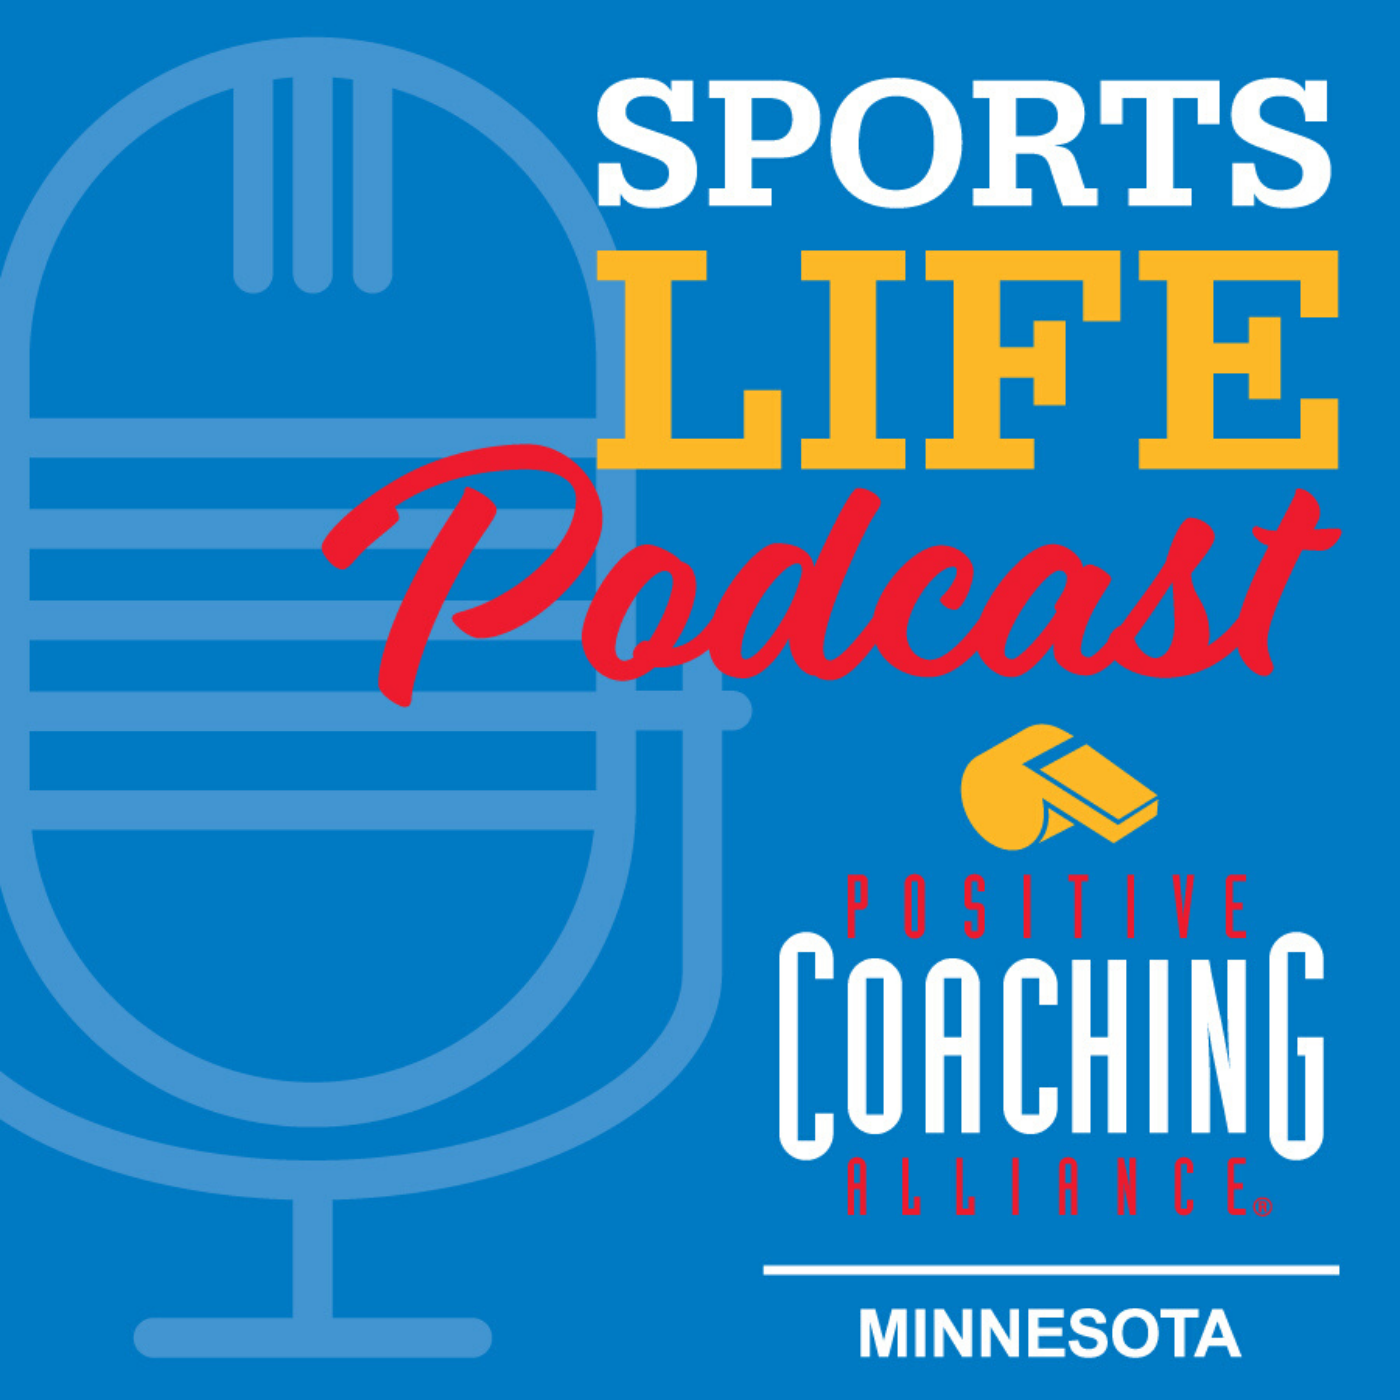 Ep 20: Performance Mindset Coach Cindra Kamphoff On Getting the Most Out Of Yourself